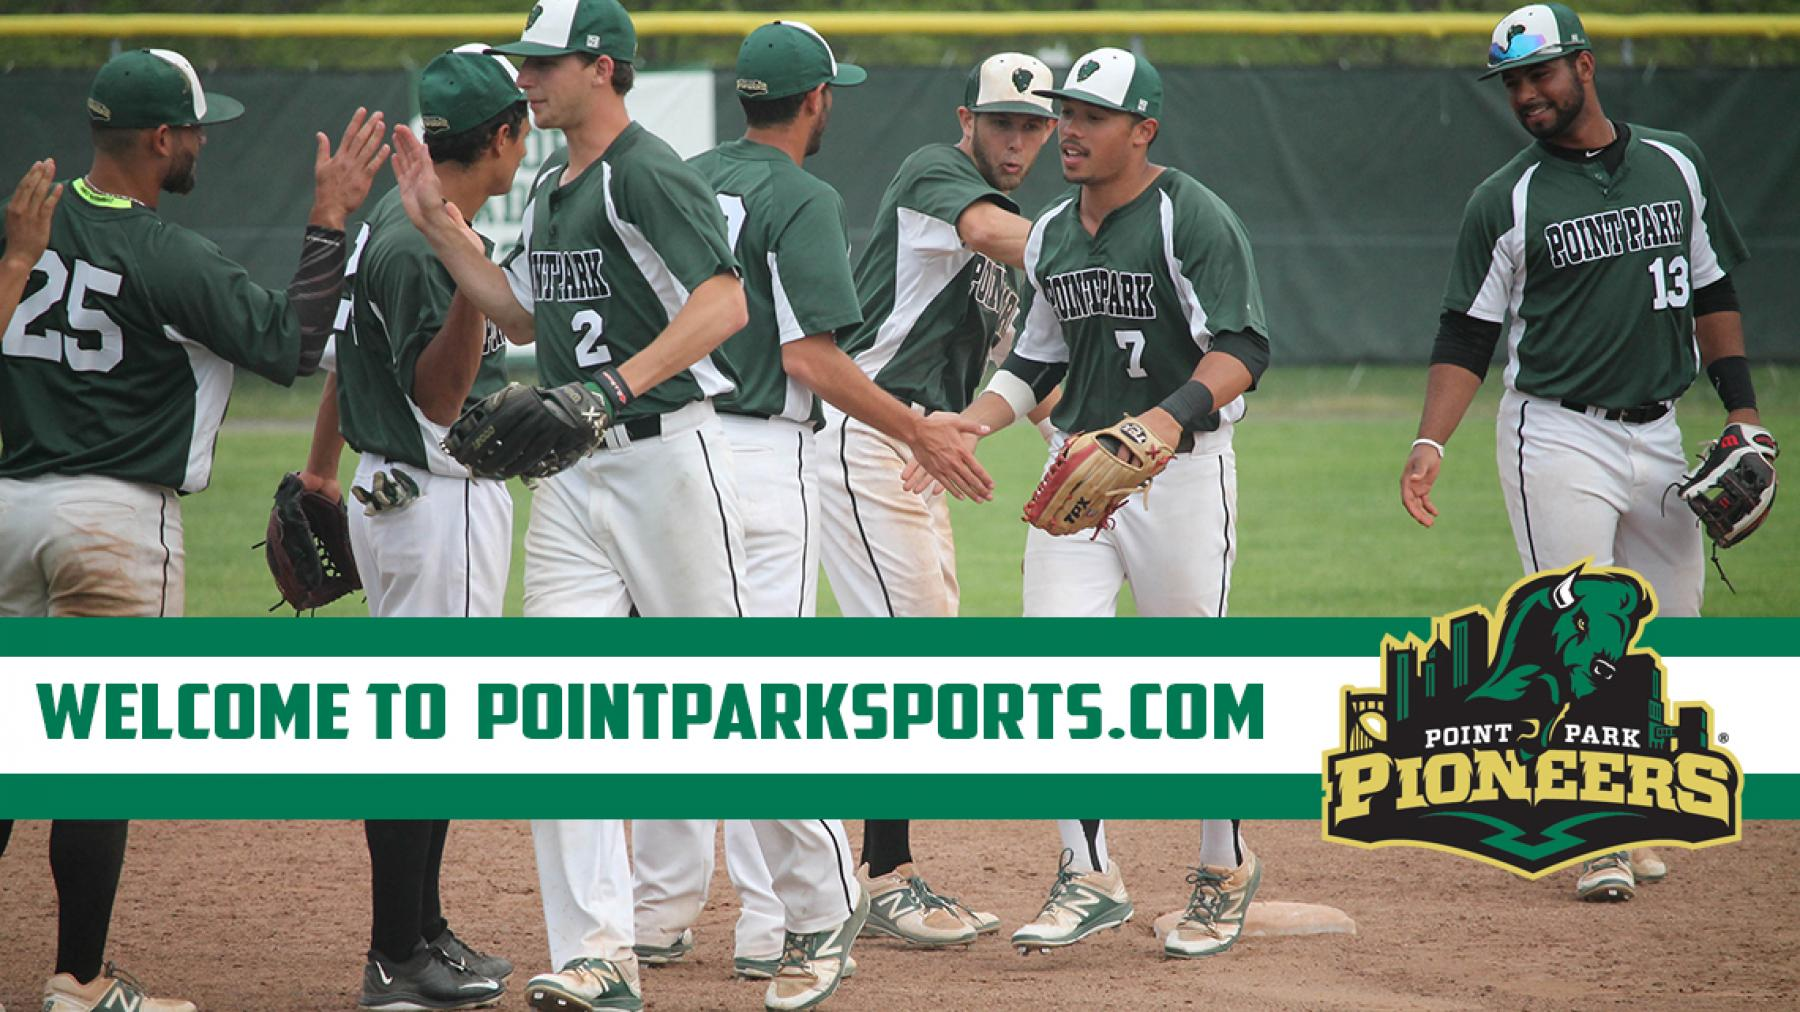 Welcome to PointParkSports.com! New Athletic Website Launched for Pioneers